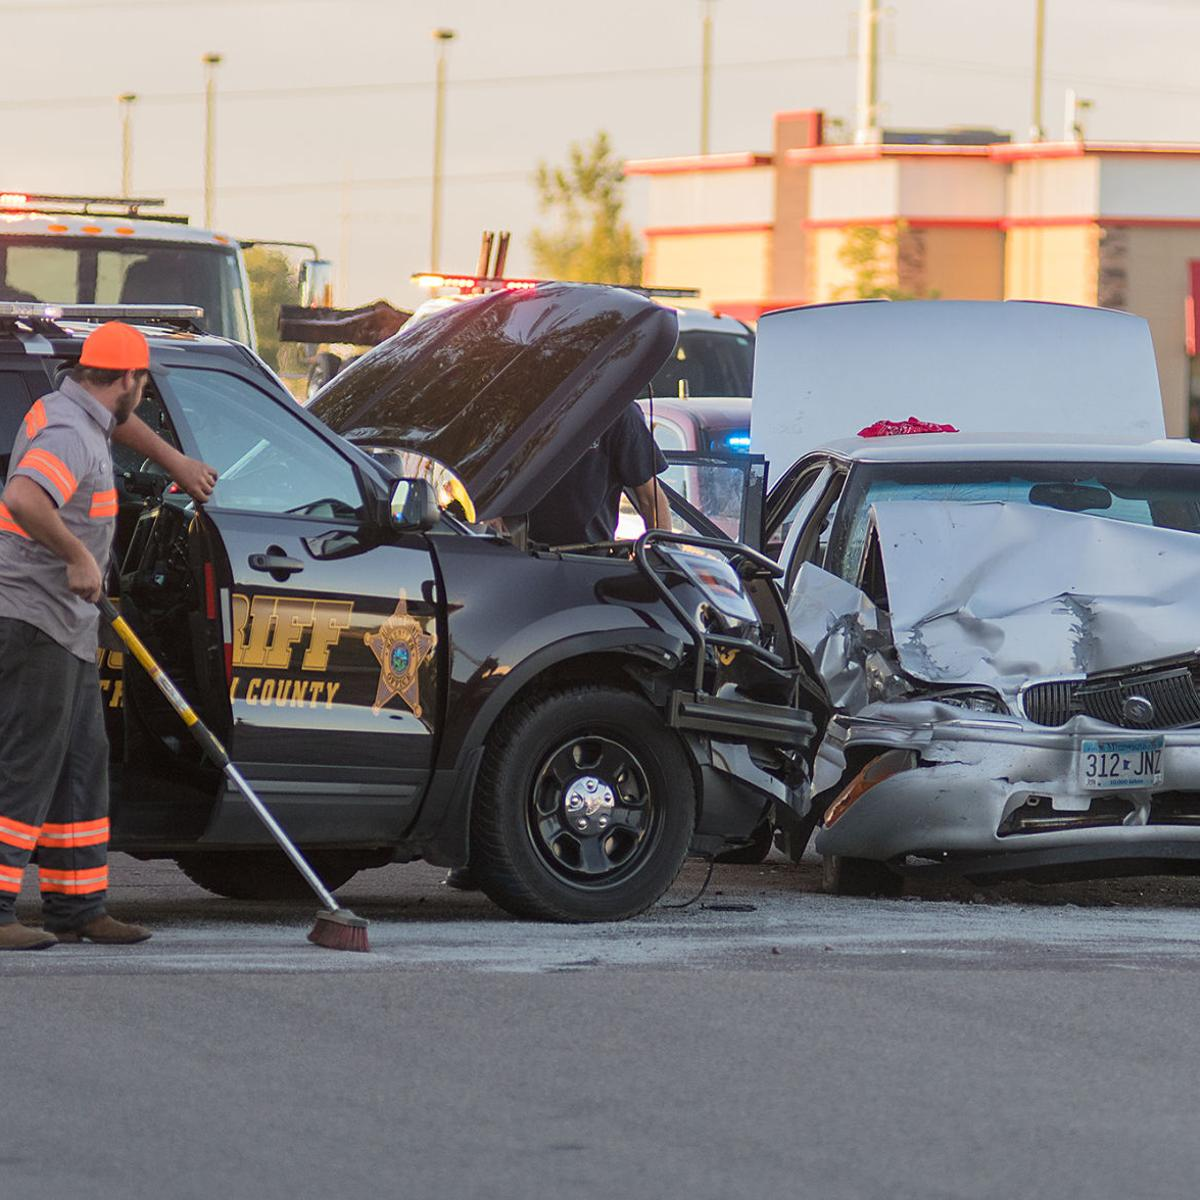 Charges filed in chase that ended in crash | Local News